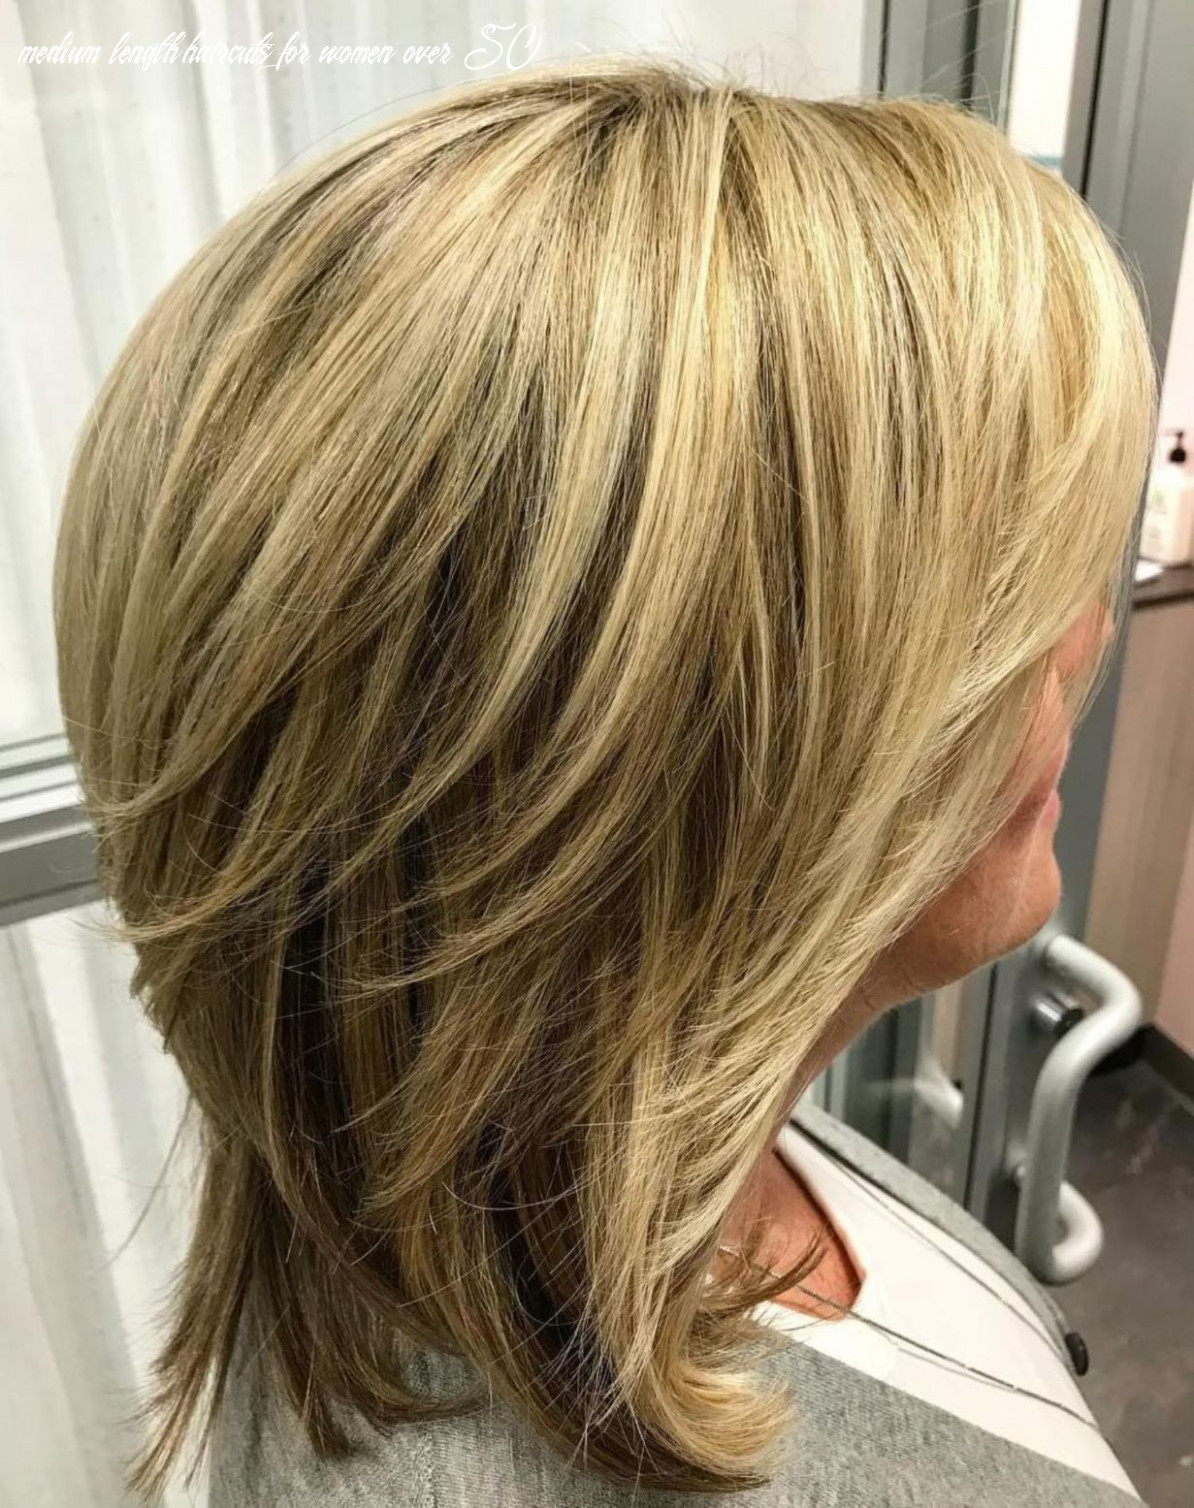 10 best modern hairstyles and haircuts for women over 10 | hair